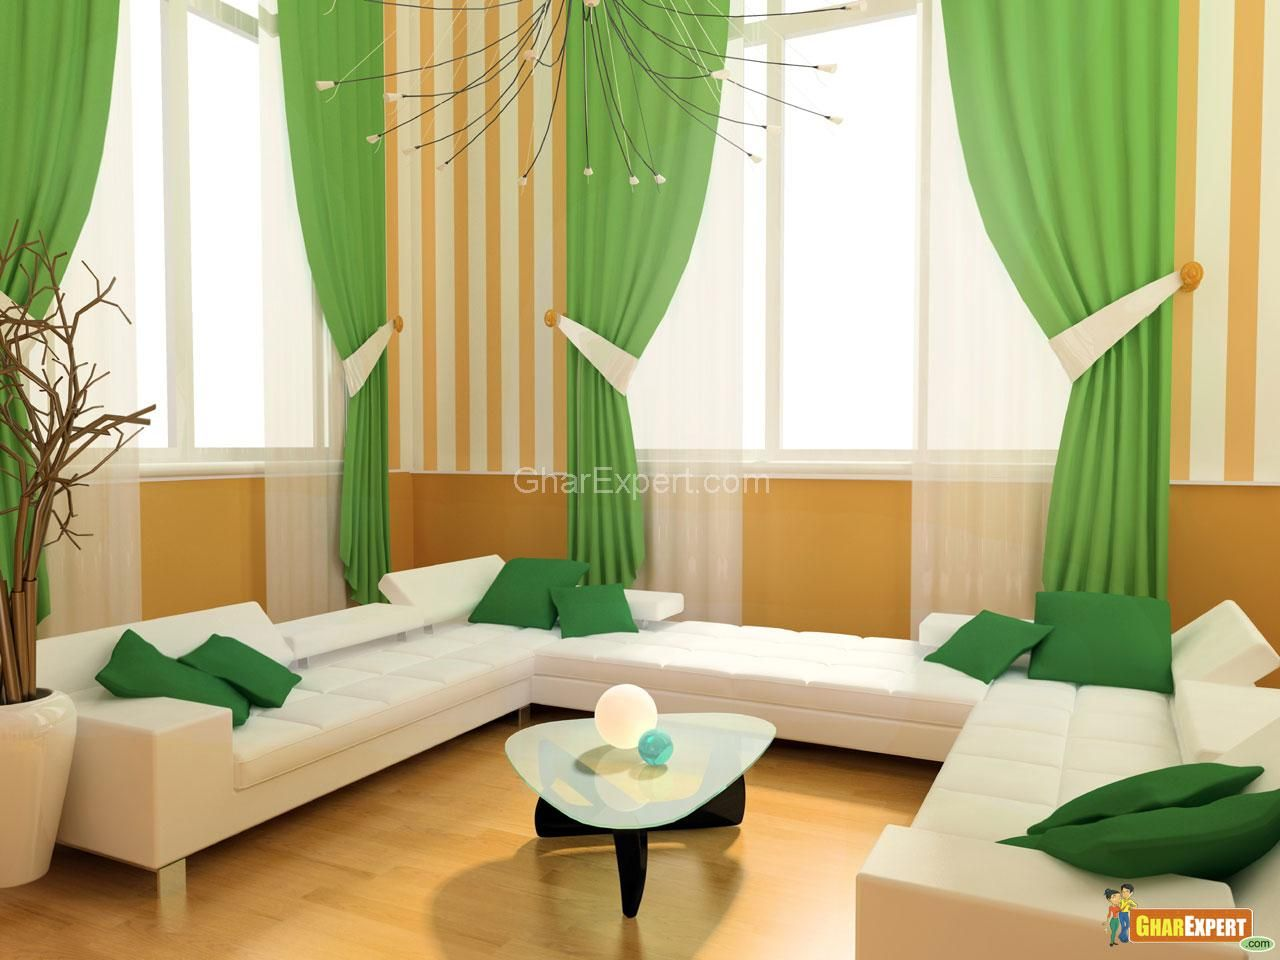 Curtain designs living room - Green Curtain Designs For Living Room Window